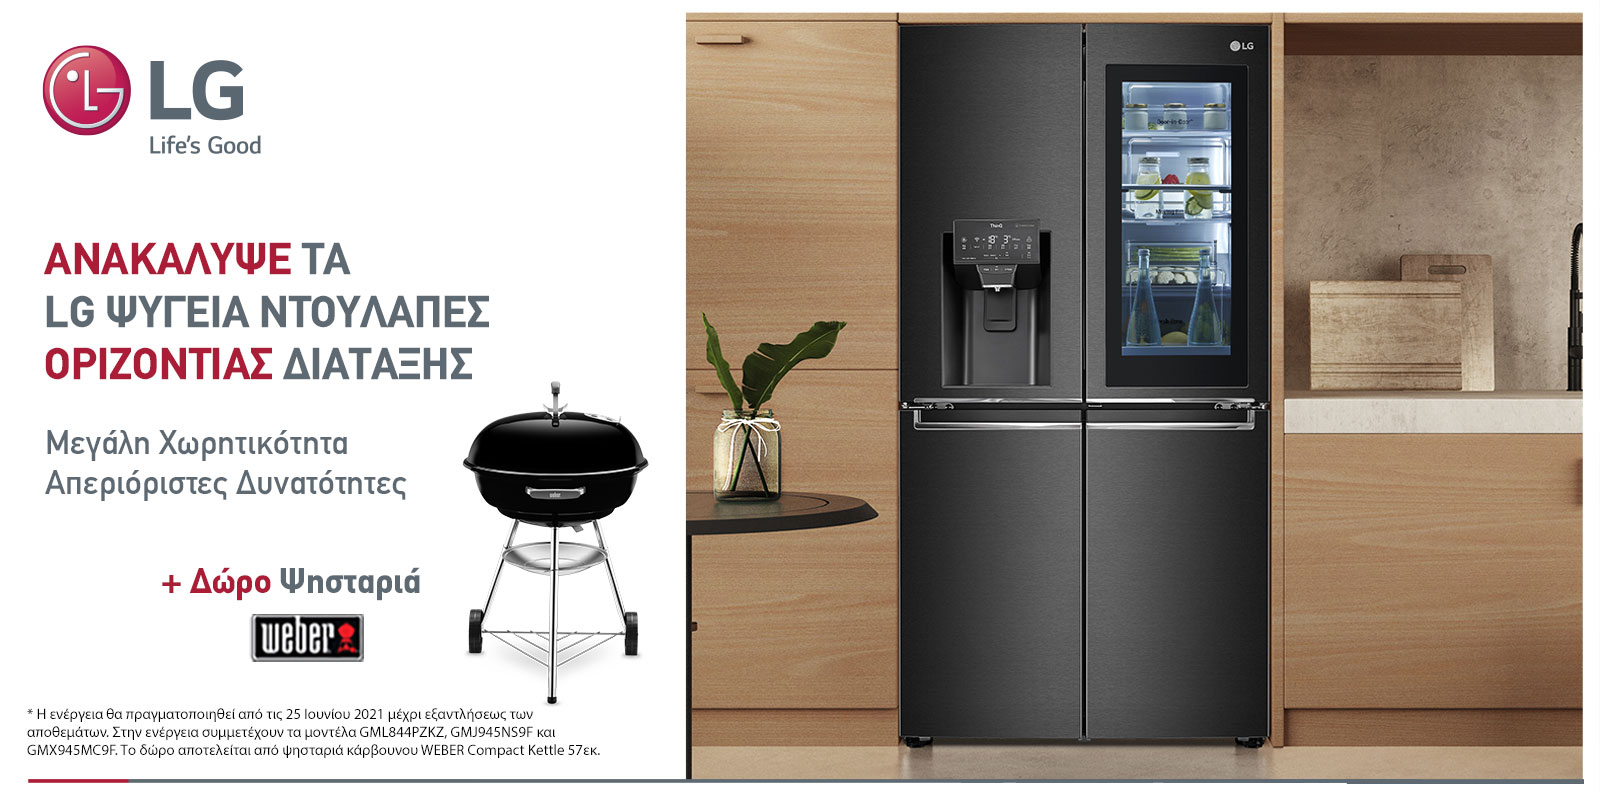 Lg Ref Promo With Weber Grill As A Gift